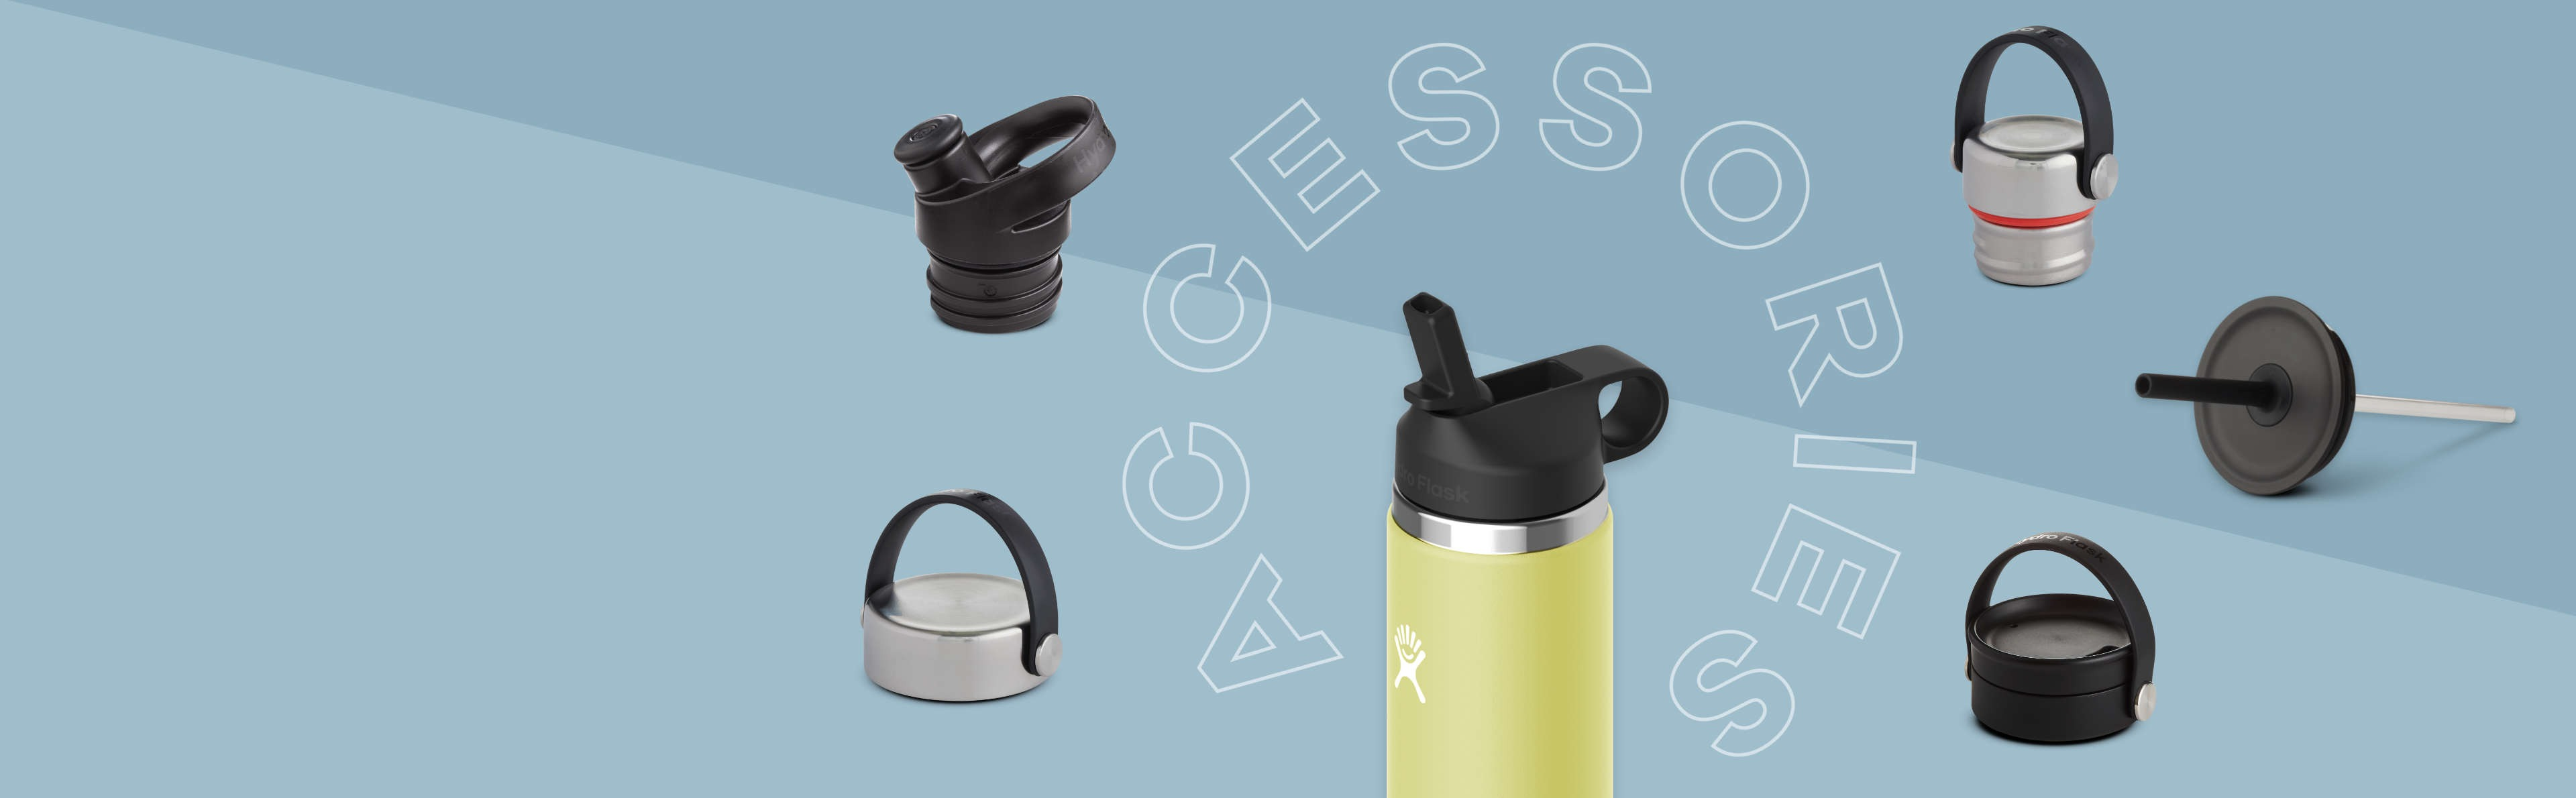 Kick things up a notch with accessories. Shop now!